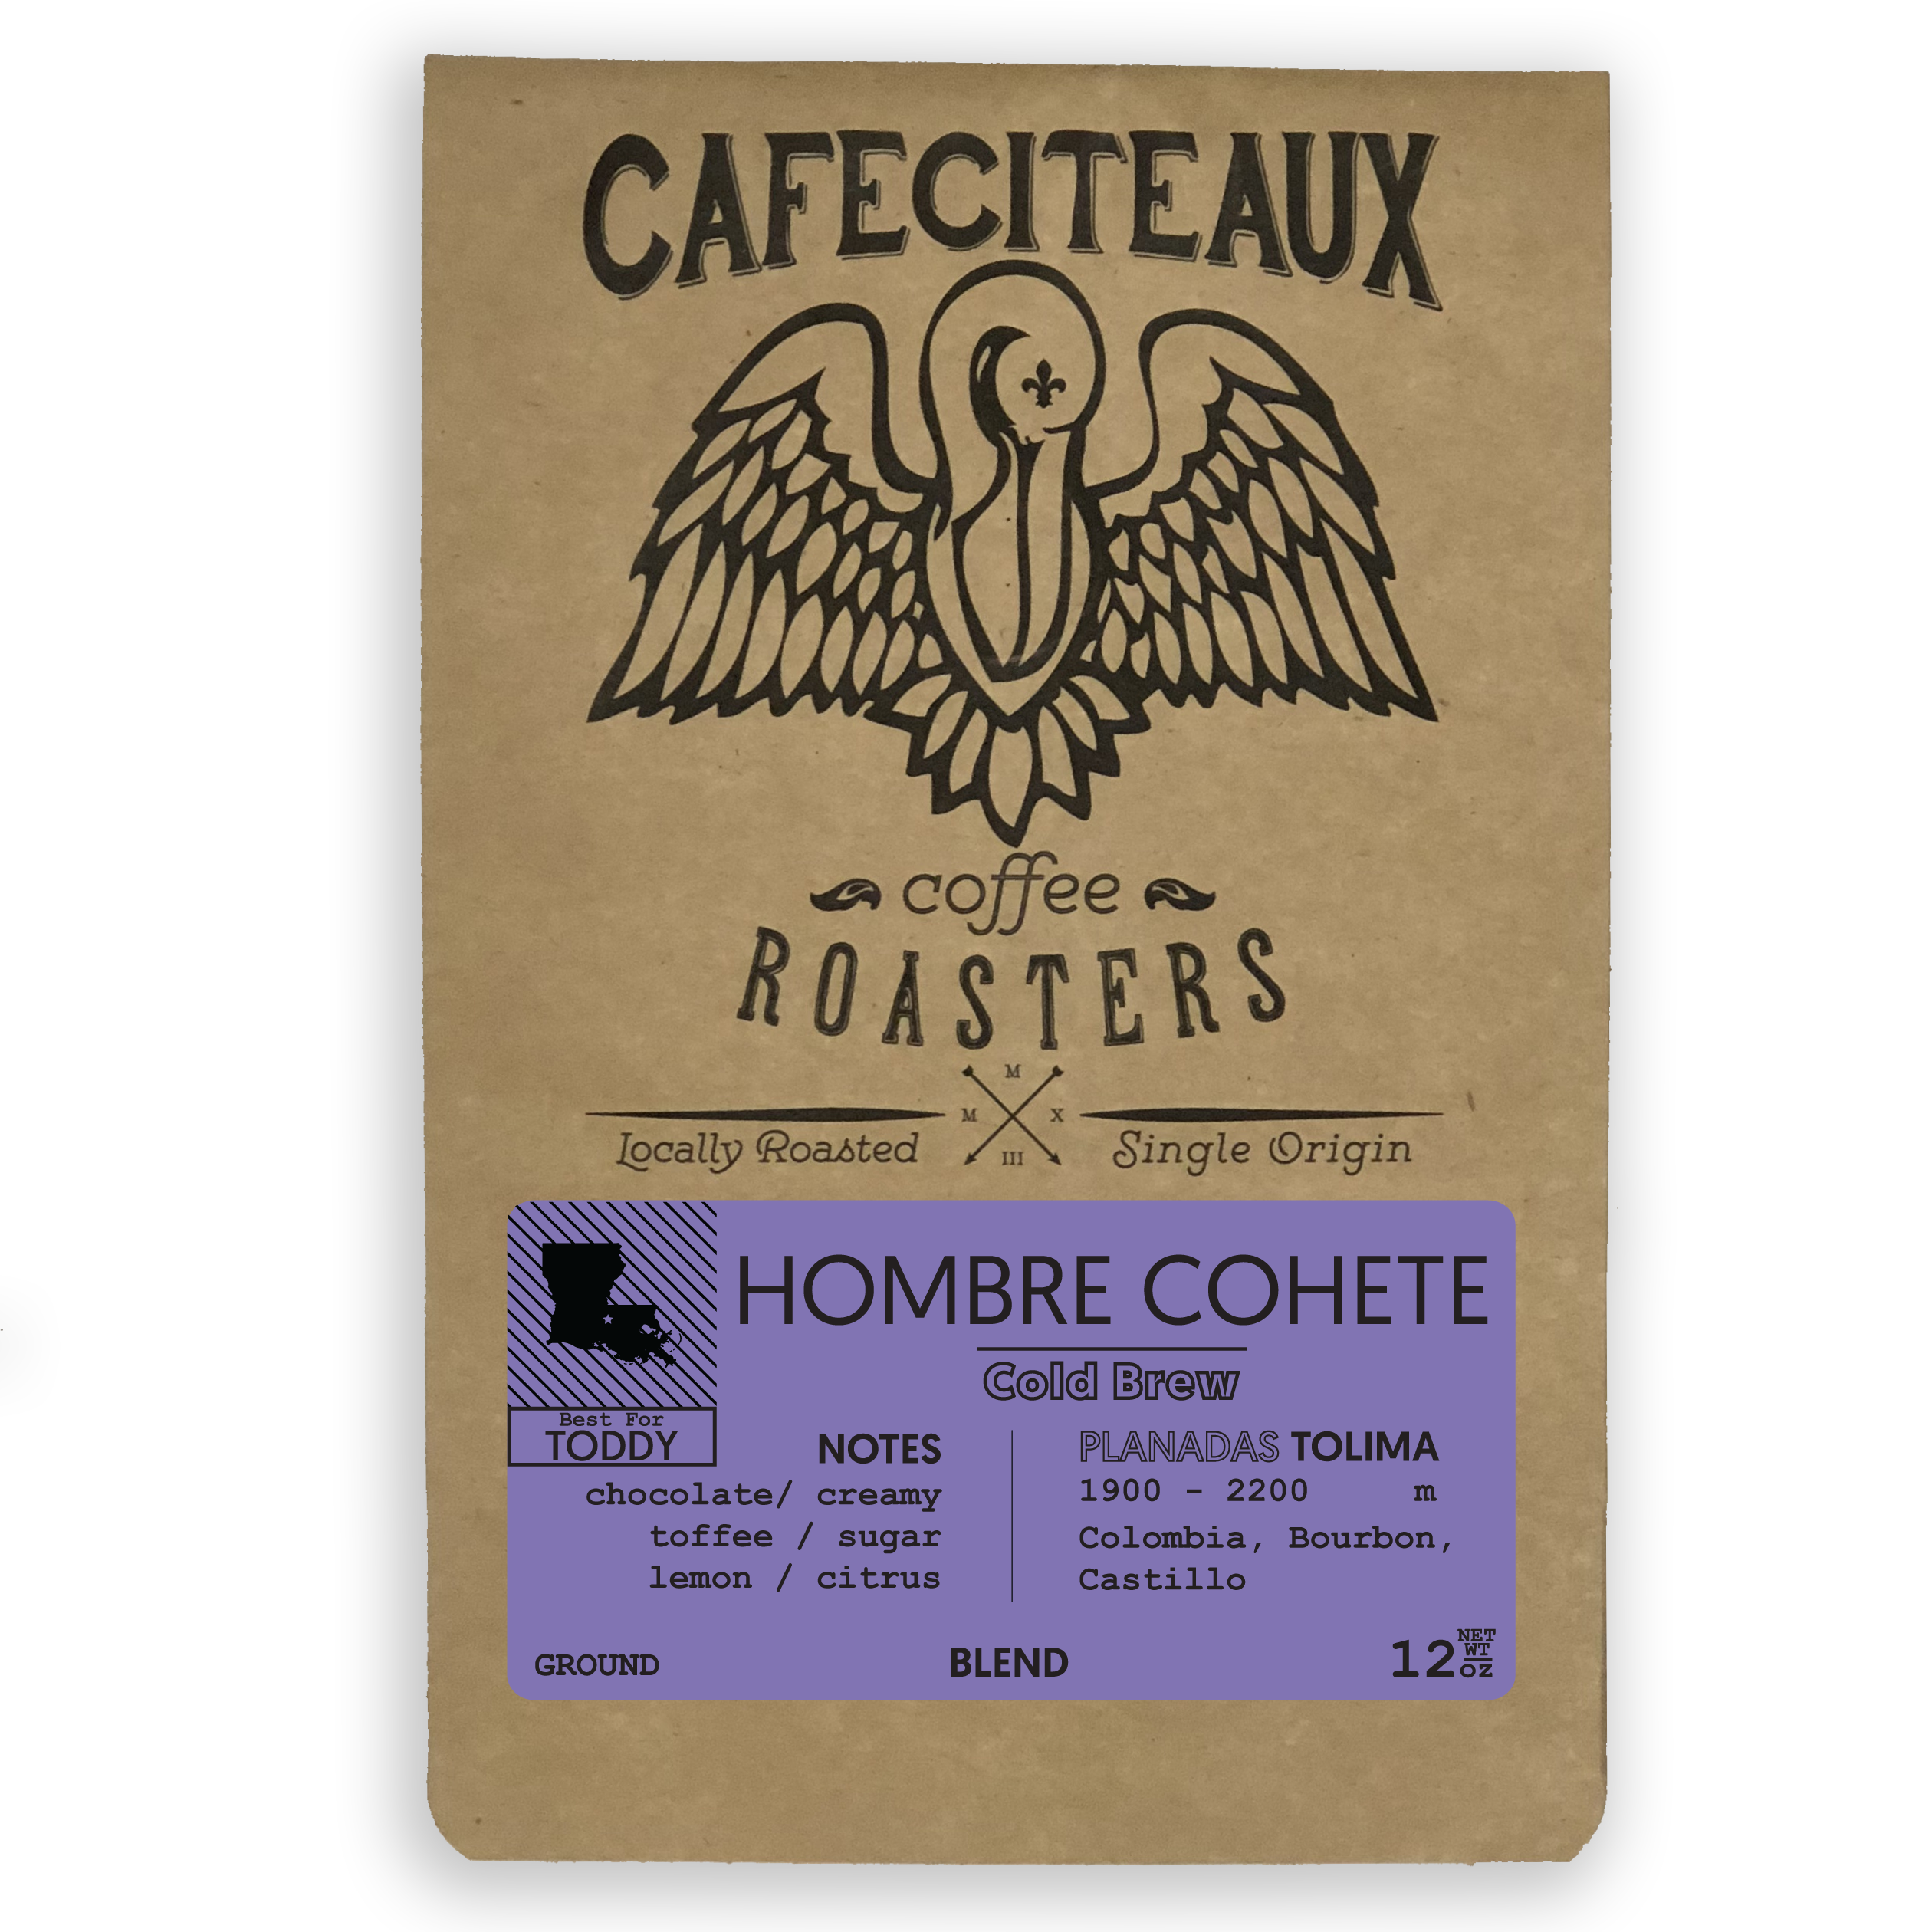 Roasted daily cafeciteaux roasters. Clipart cup green coffee